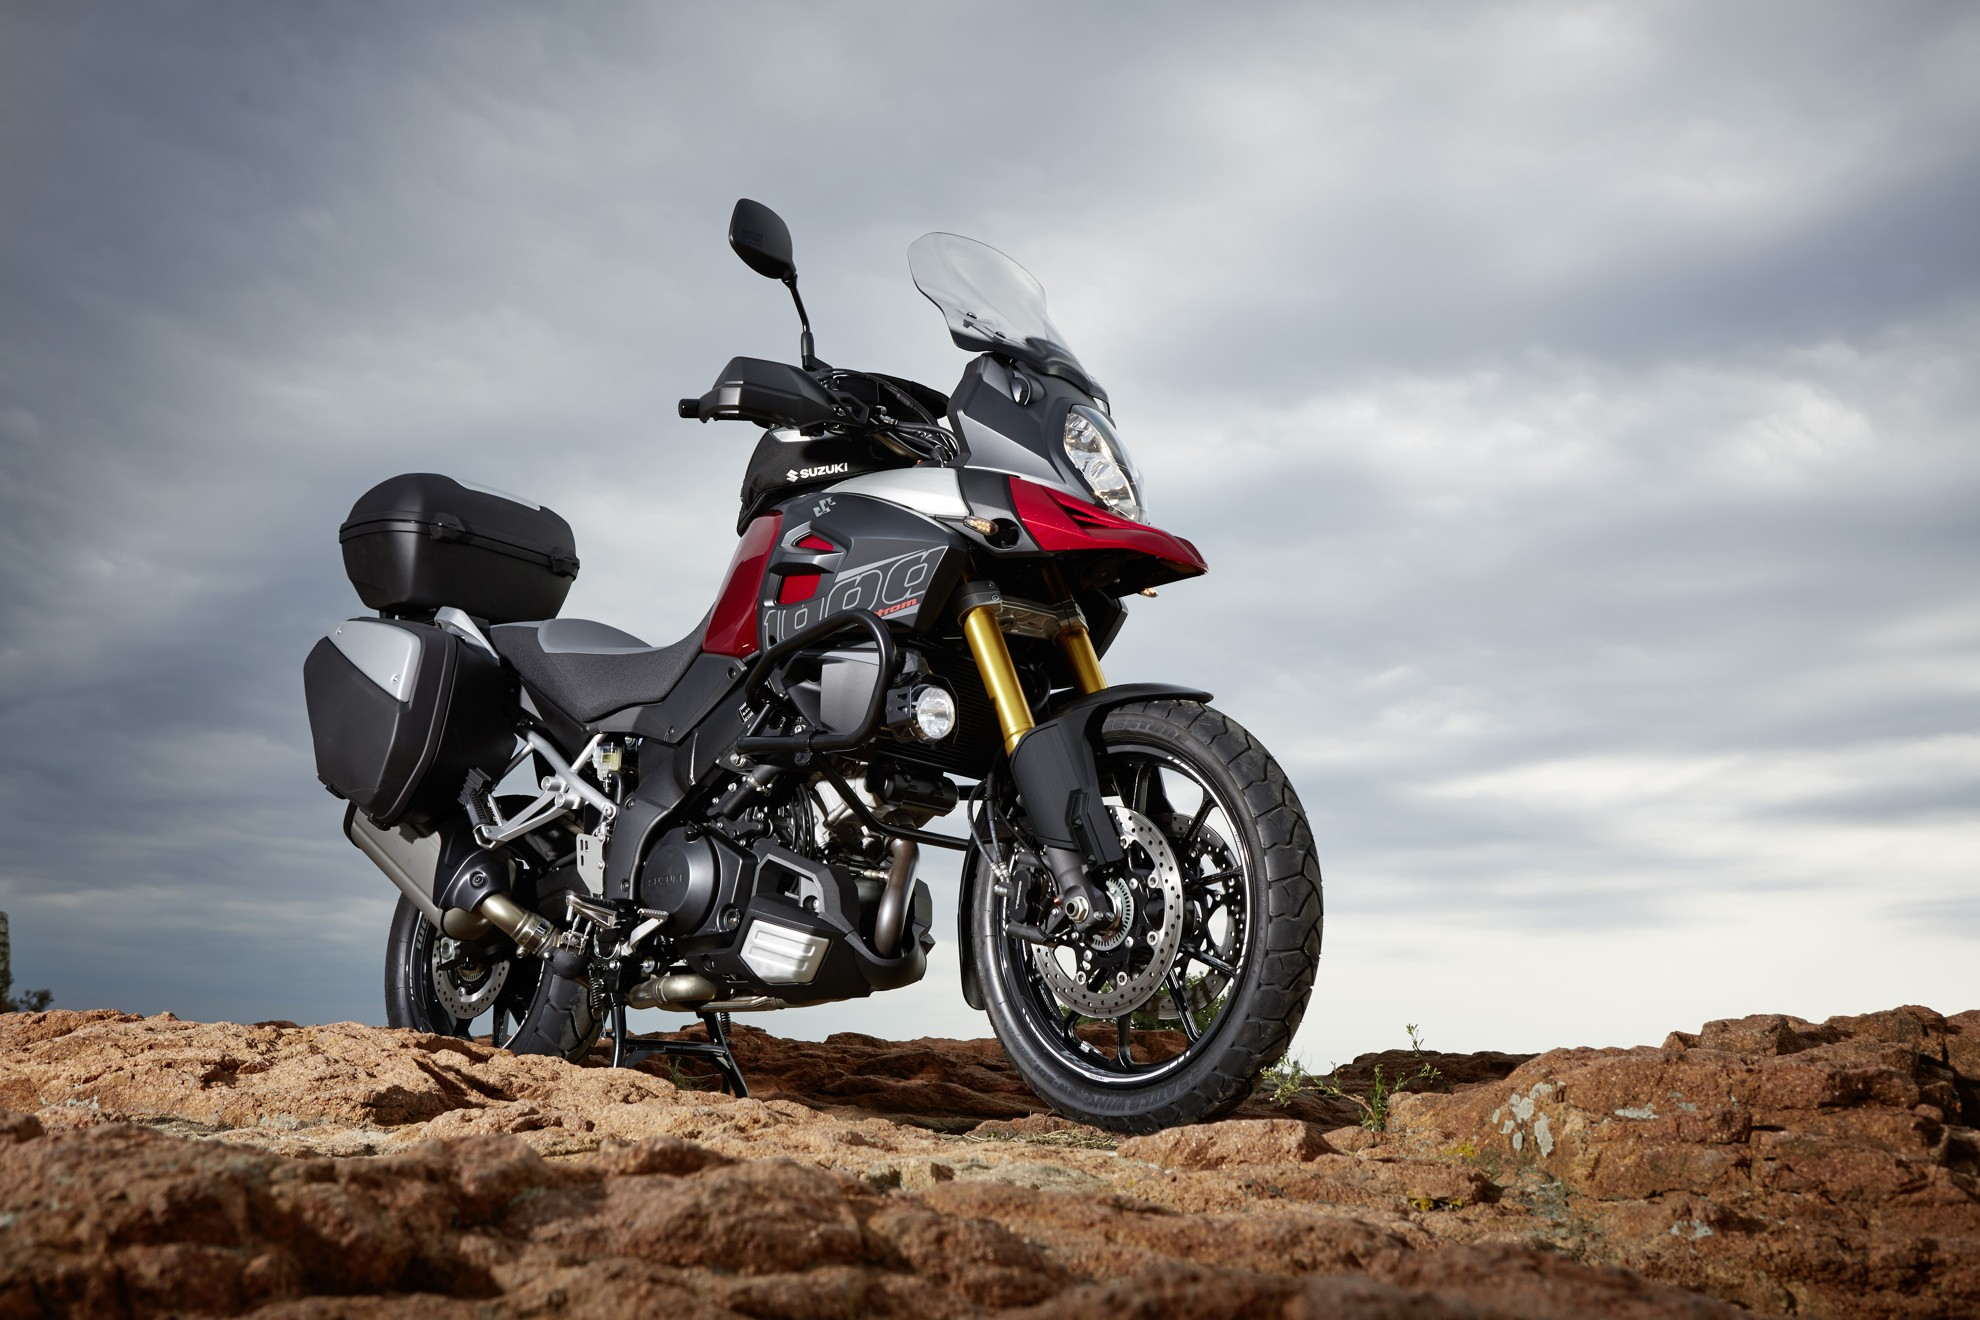 Suzuki v strom 1000 abs motorcycle returns for How much does a motor scooter cost